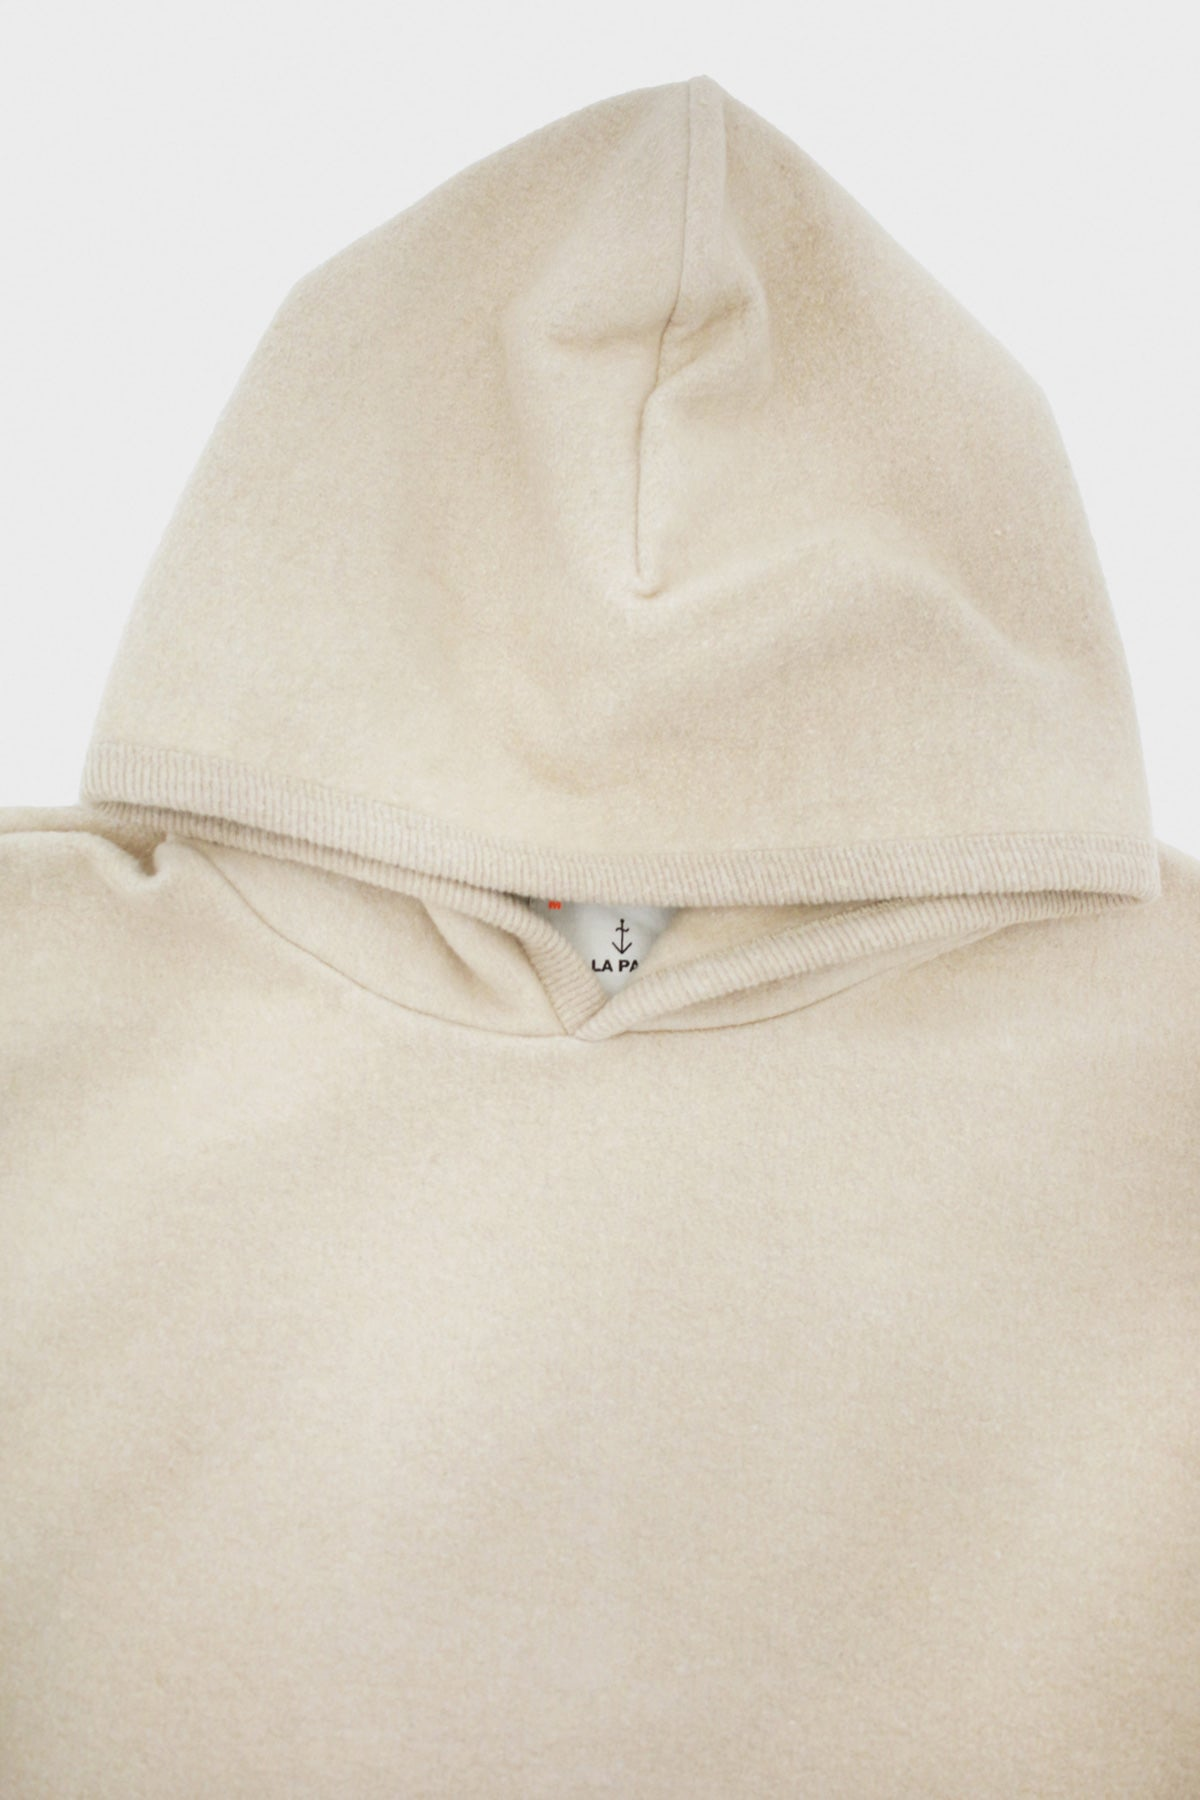 La Paz - Matias Hoodie - Light Brown Fleece - Canoe Club